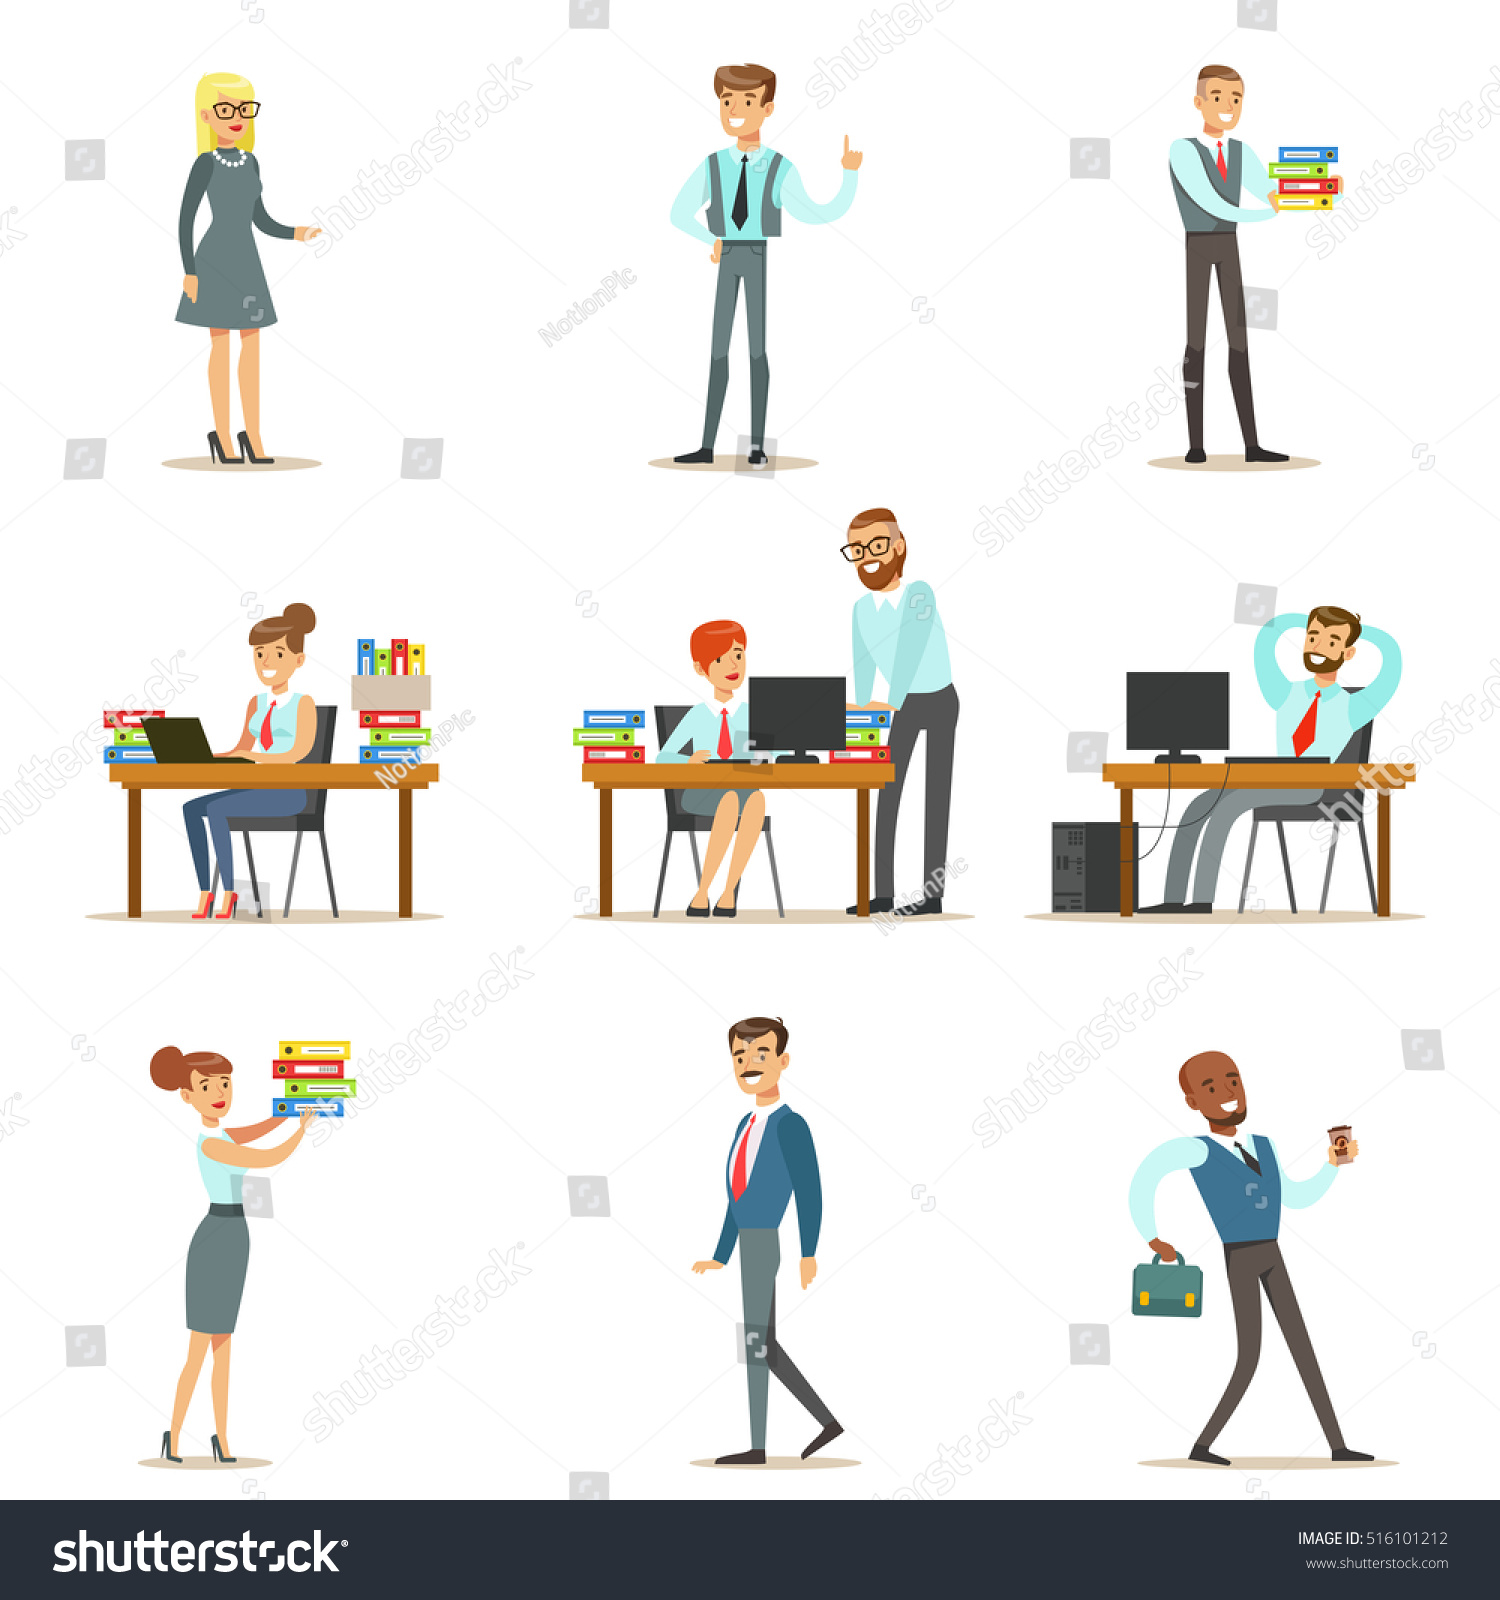 Employees Working on Computers Having a Meeting at Table - Download Free  Vectors, Clipart Graphics & Vector Art